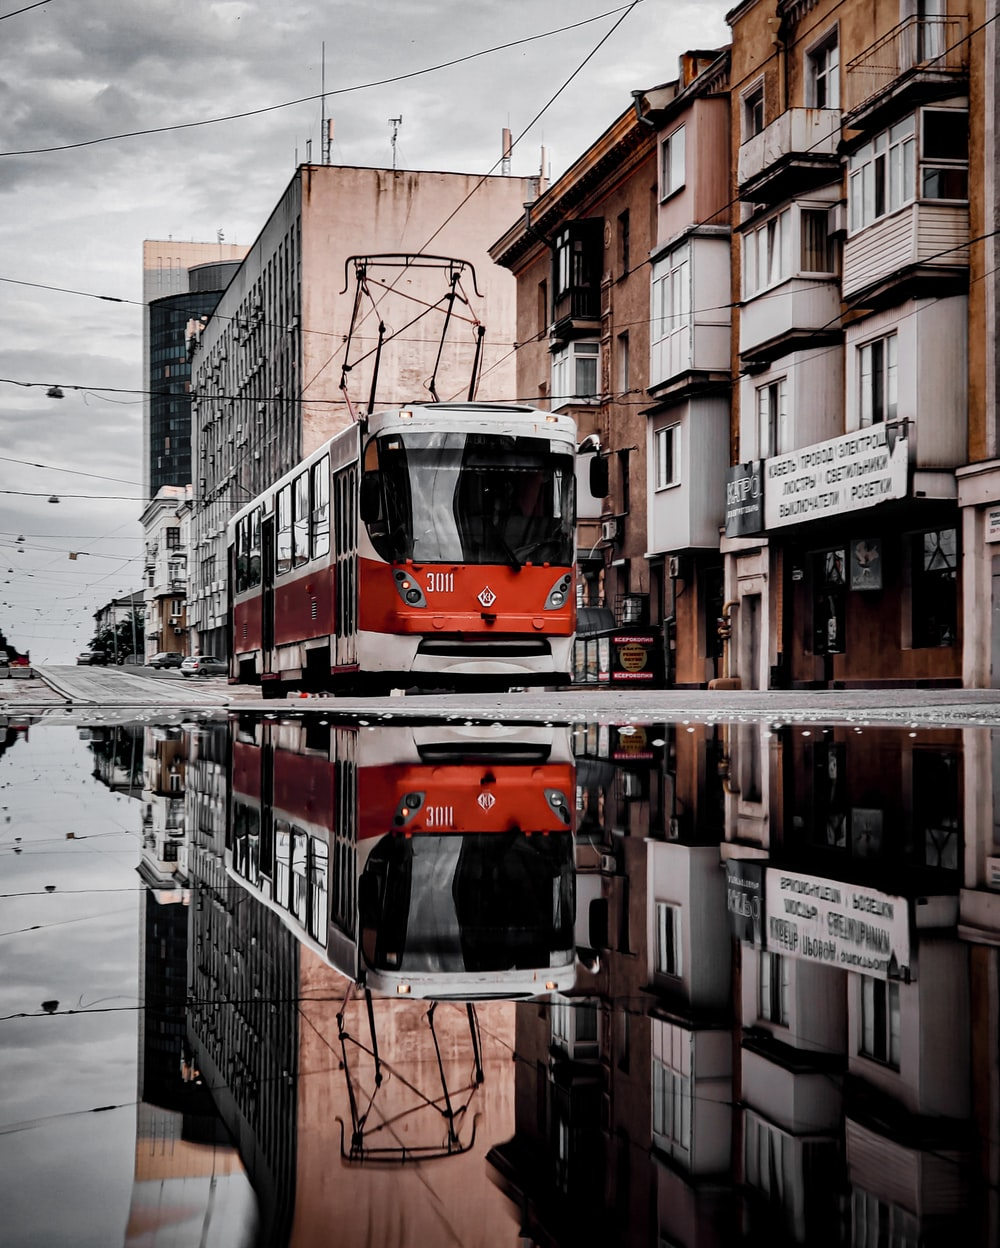 red and white bus near buildings